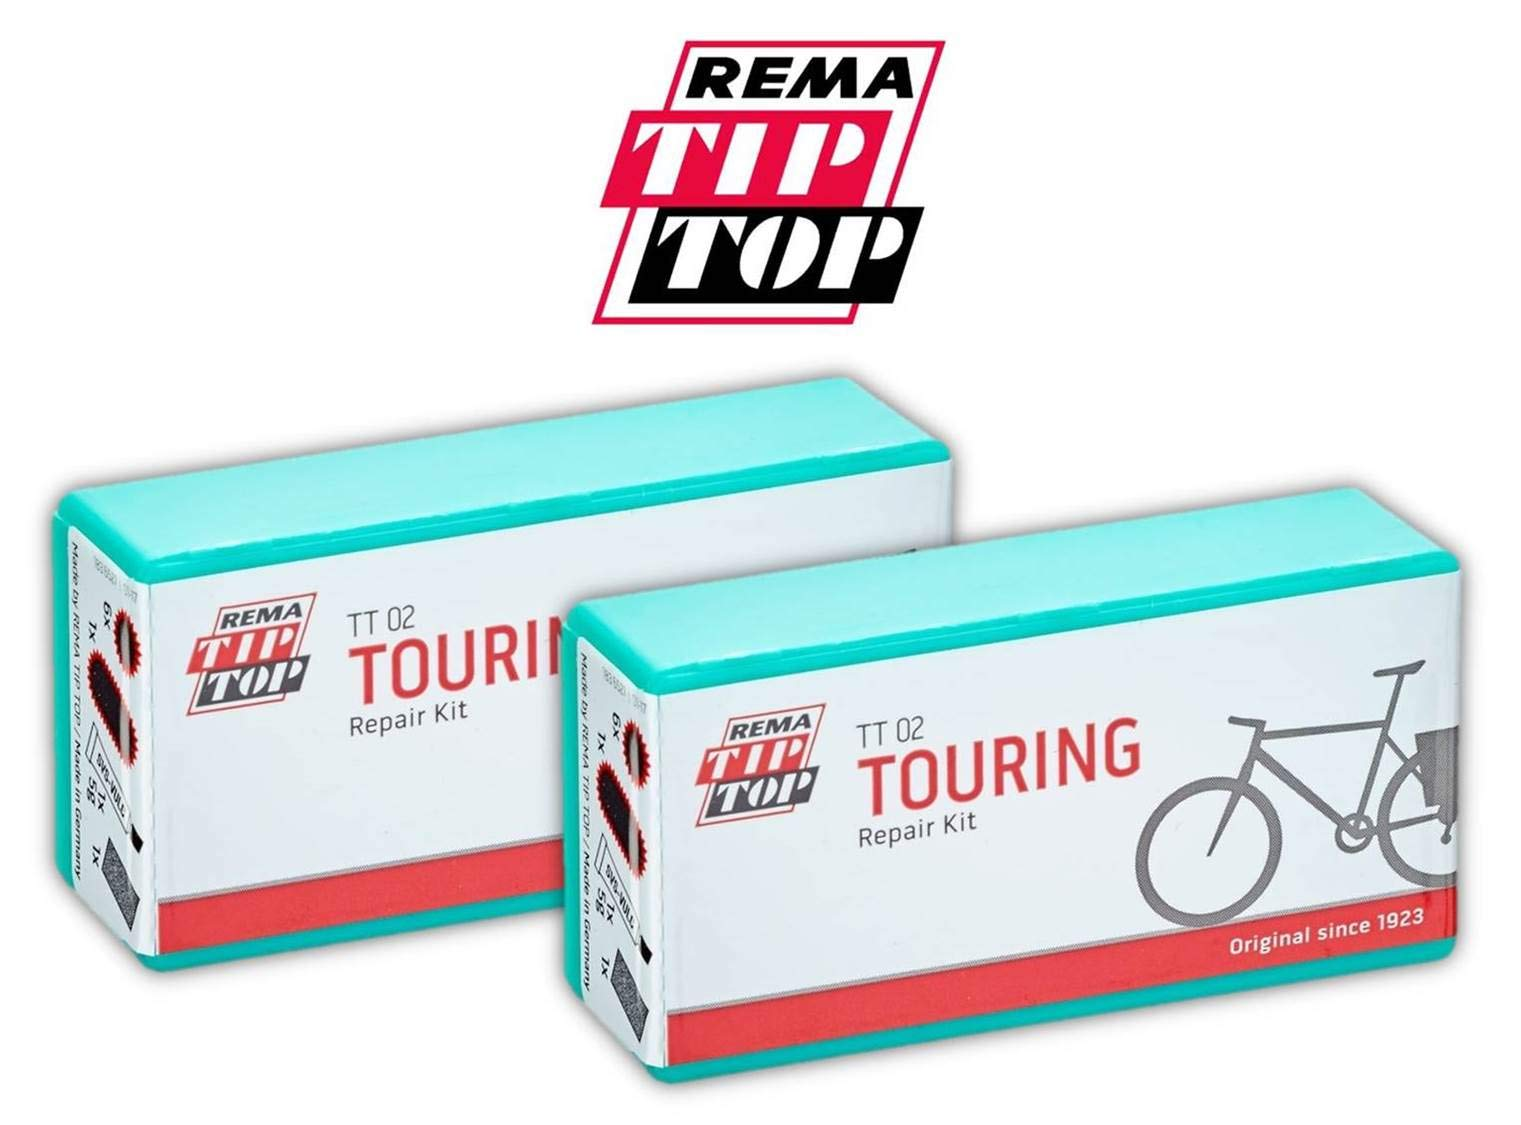 Rema Tip Top TT02 Touring Tube Puncture Repair Kit, Large - Two (2) Pack by Rema Tip Top (Image #1)